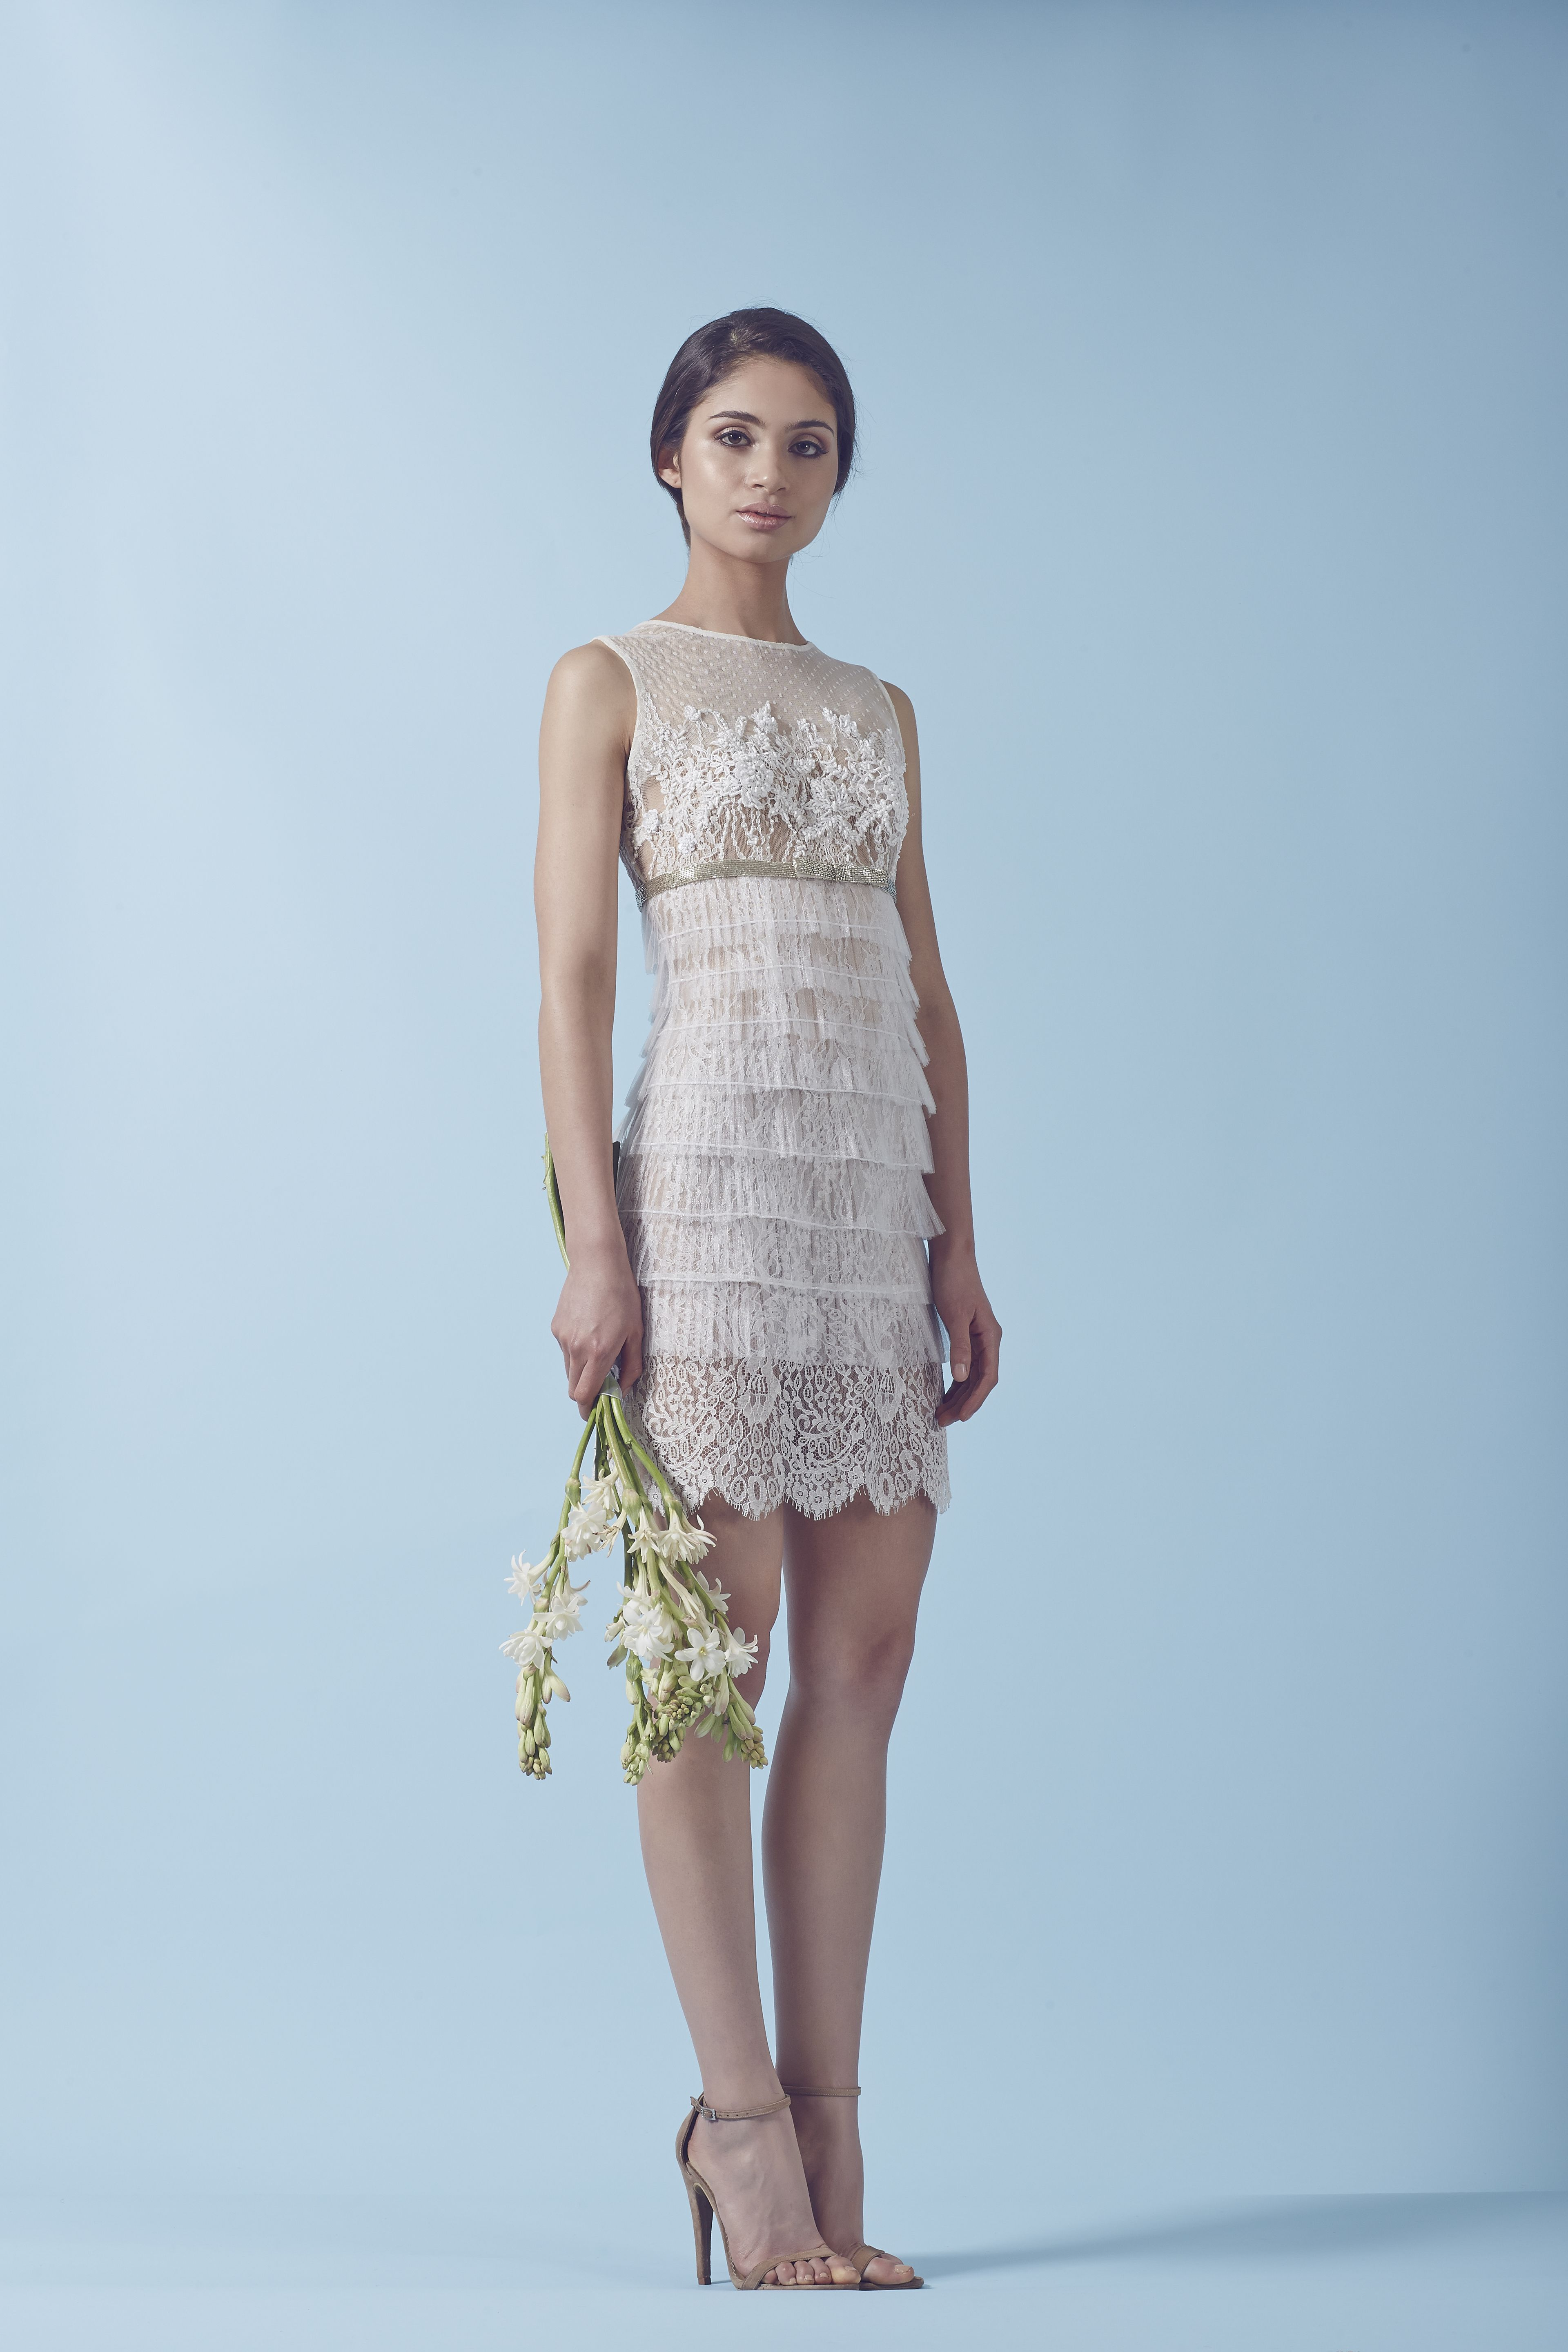 Pin by Gio Angulo Sagastegui on party dresses | Pinterest